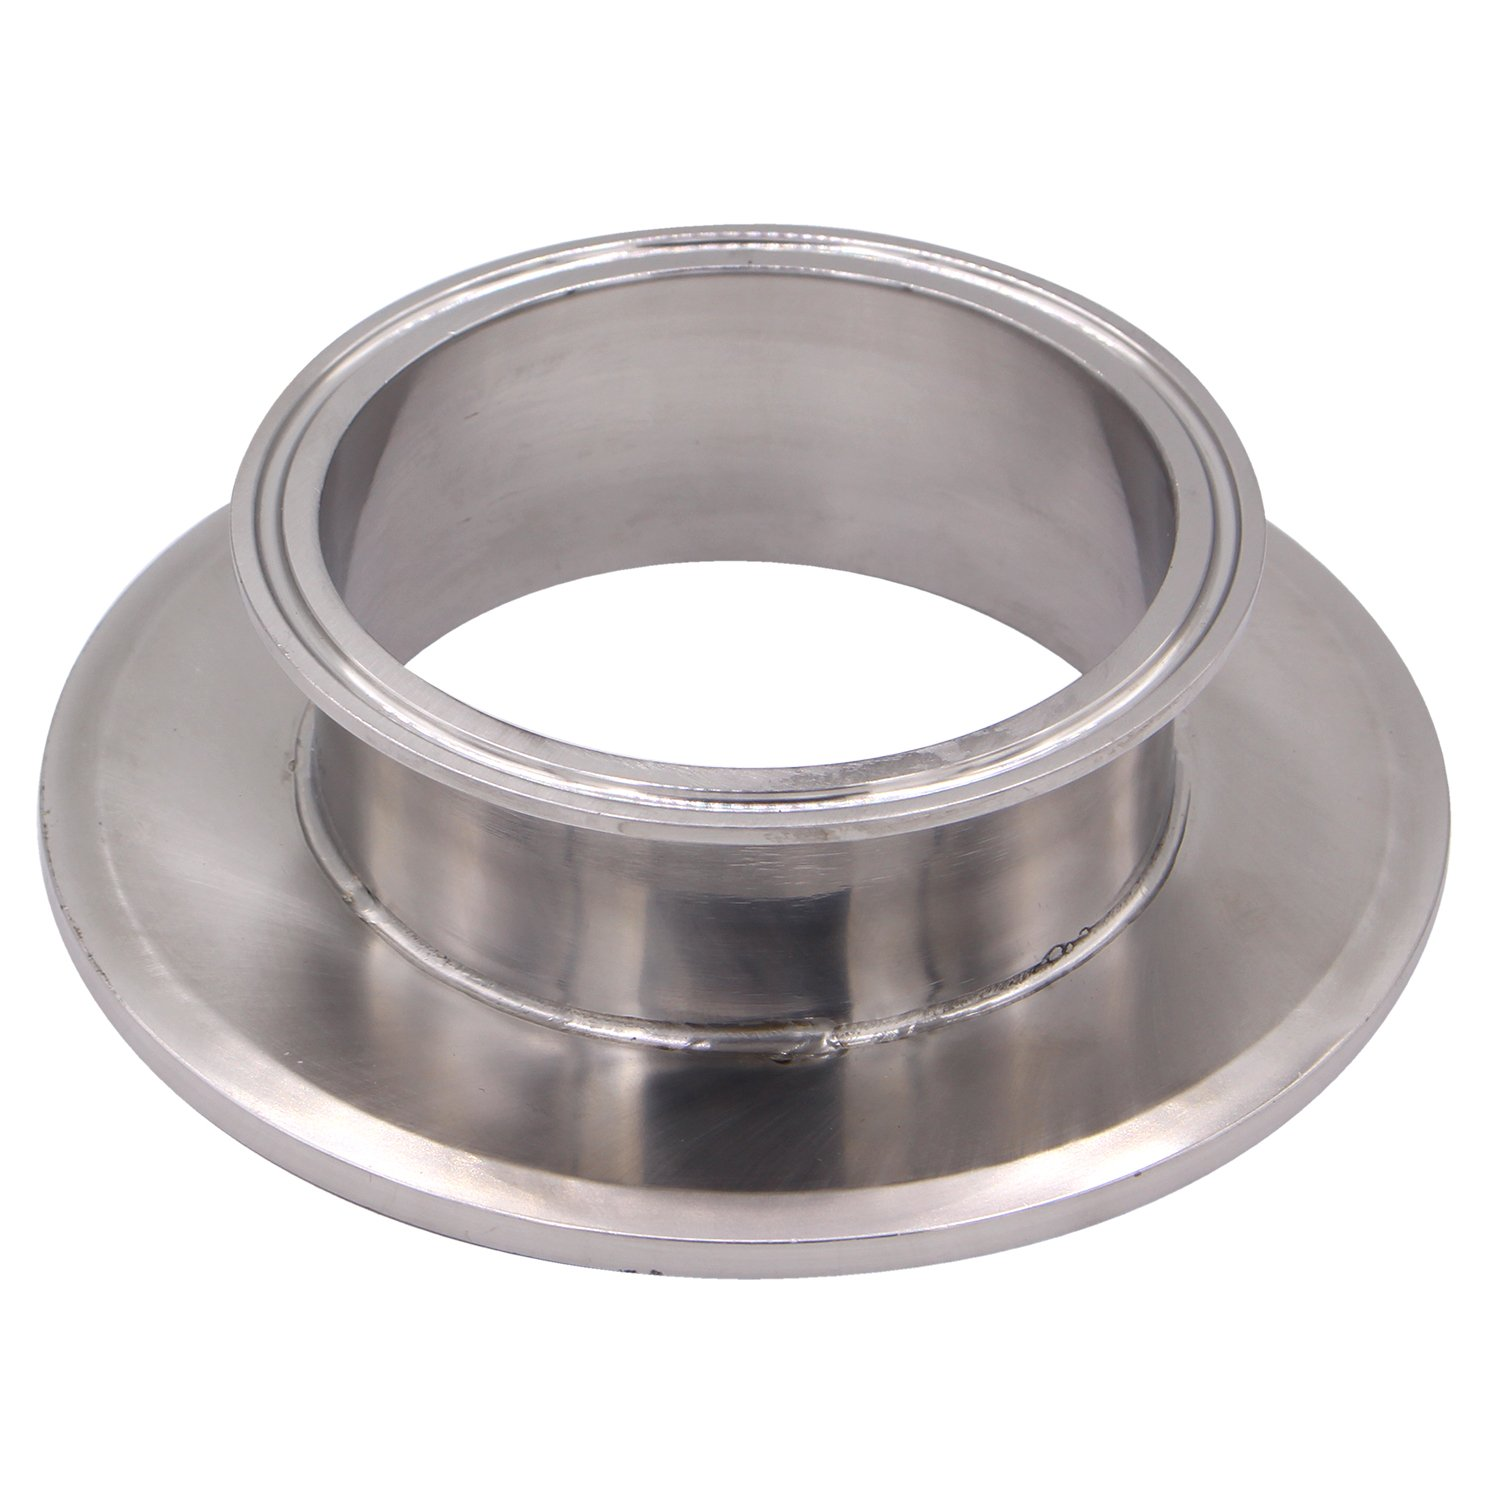 DERNORD Sanitary Concentric Reducer Tri Clamp Clover Stainless Steel 304 Sanitary Fitting End Cap Reducer (Tri Clamp Size: 6 inch x 4 inch)